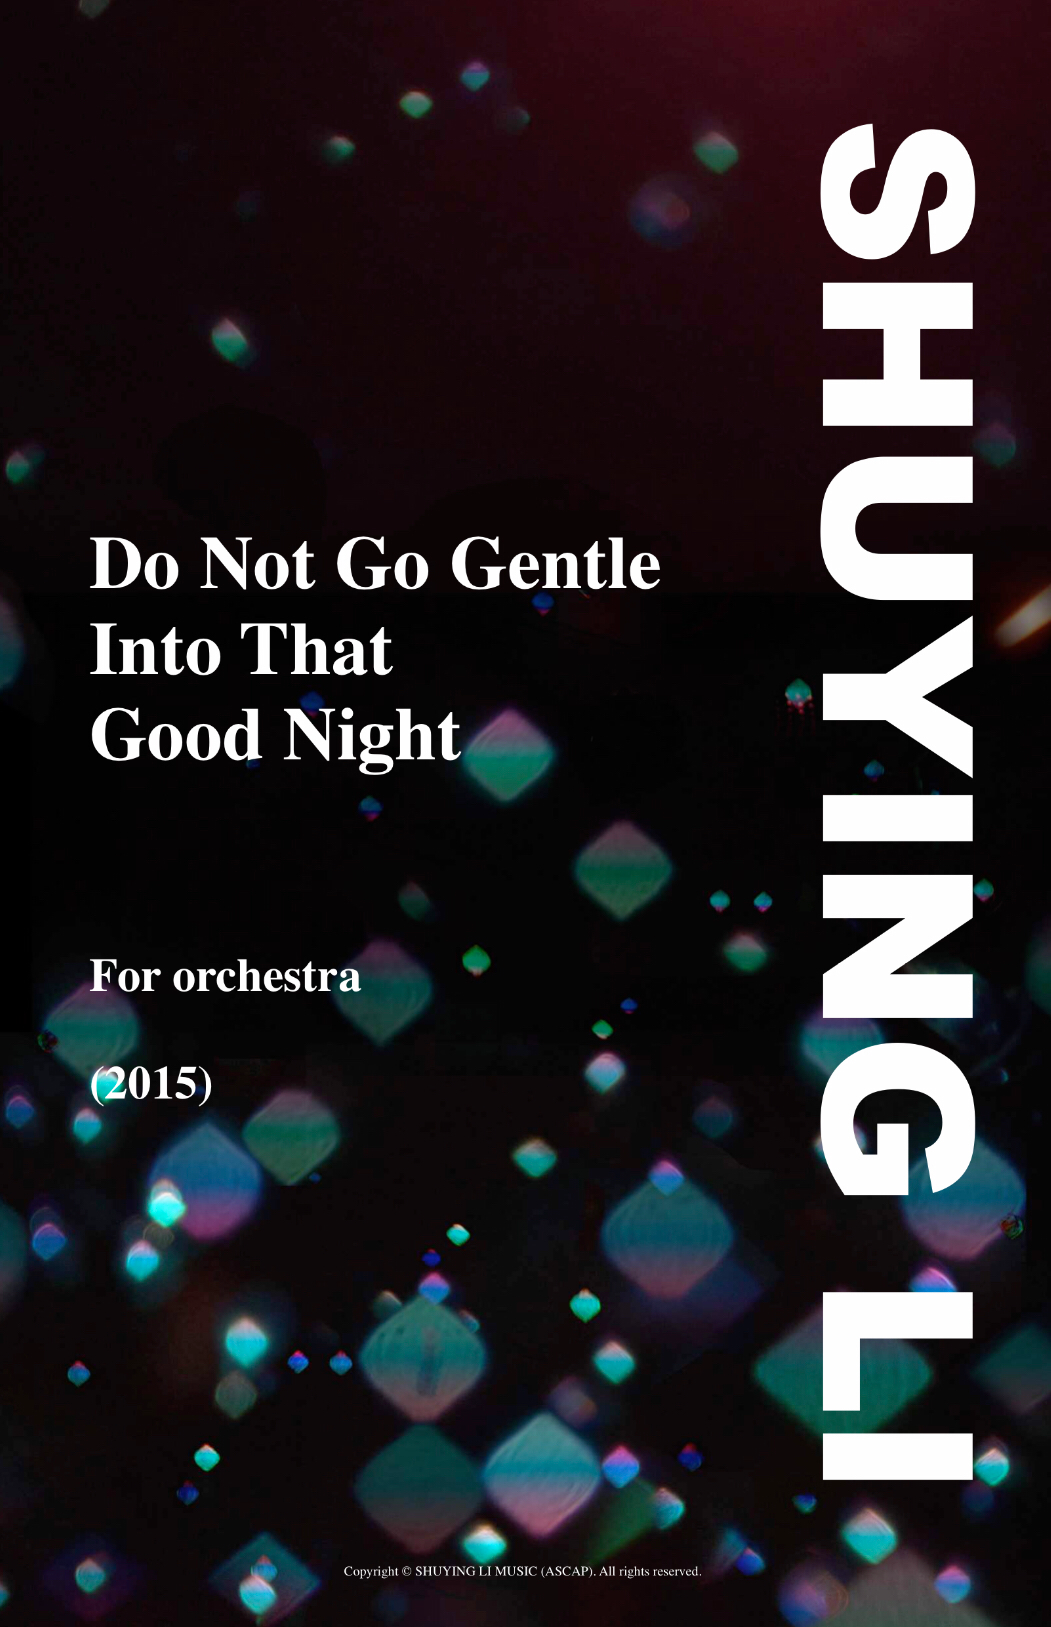 Do Not Go Gentle Into That Good Night by Shuying Li